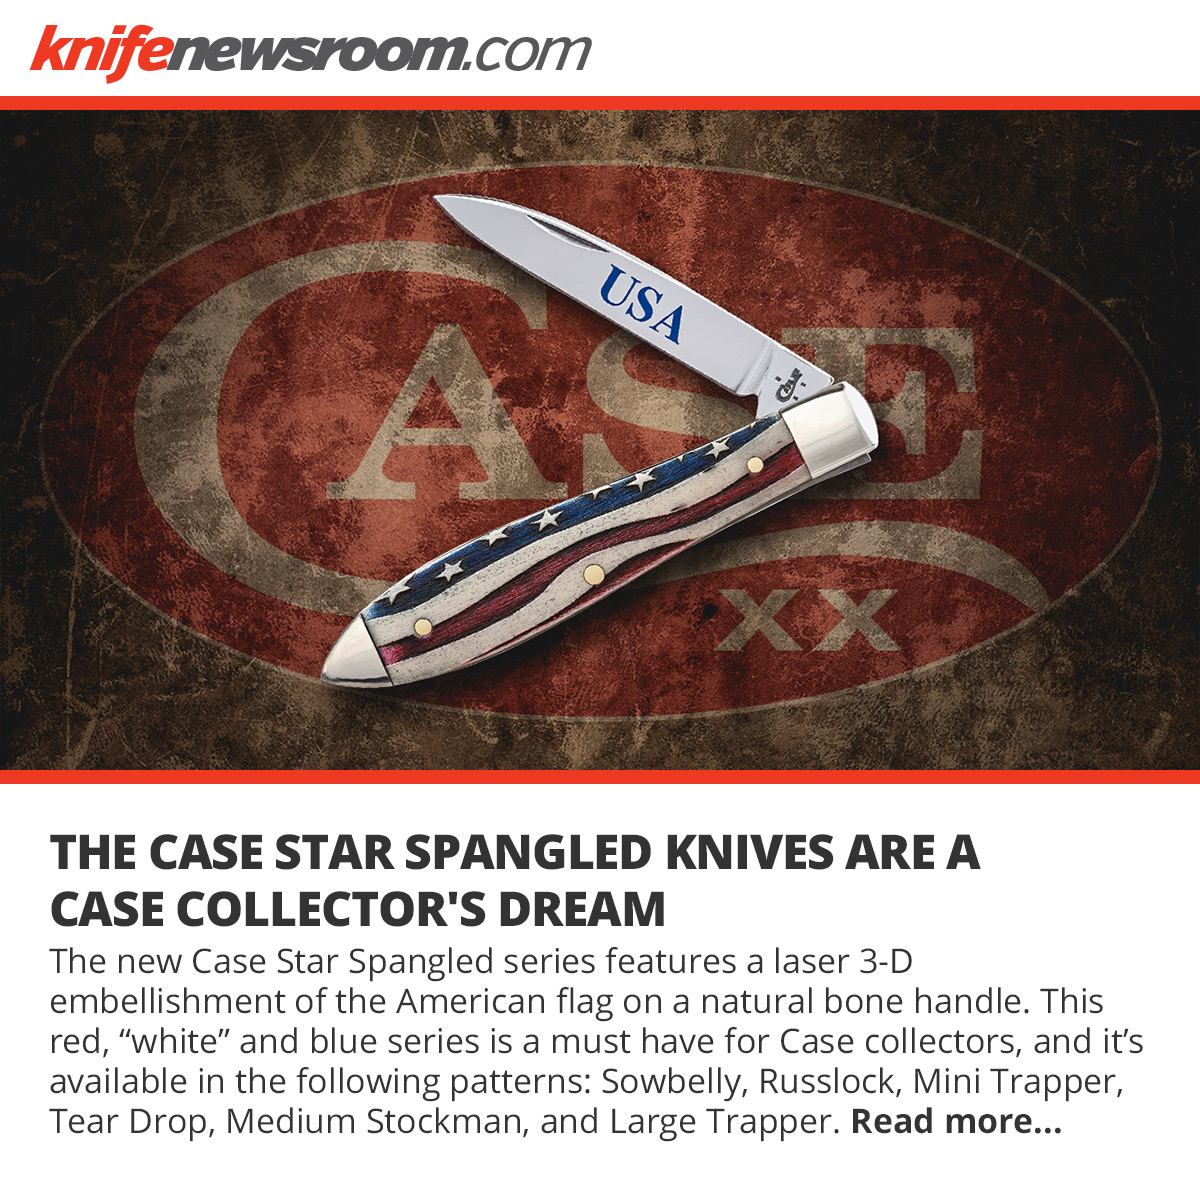 case star spangled at knifenewsroom